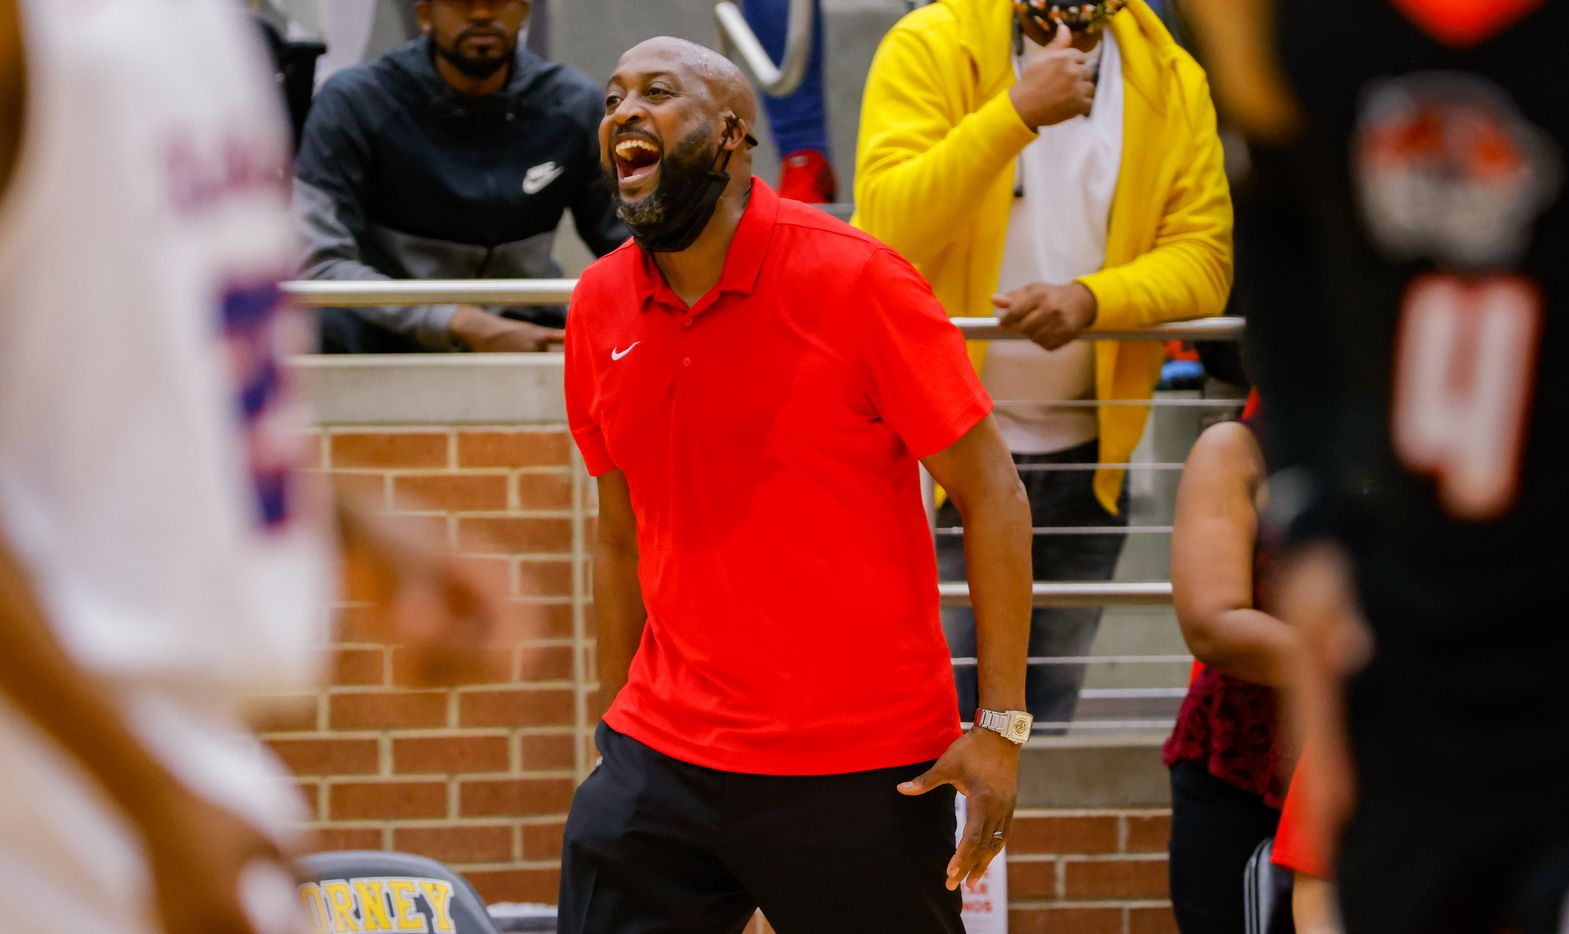 Kimball coach Nicke Smith during the overtime of a boys basketball UIL Class 5A Region II playoff game against Lancaster in Forney on Friday, March 5, 2021. (Juan Figueroa/ The Dallas Morning News)